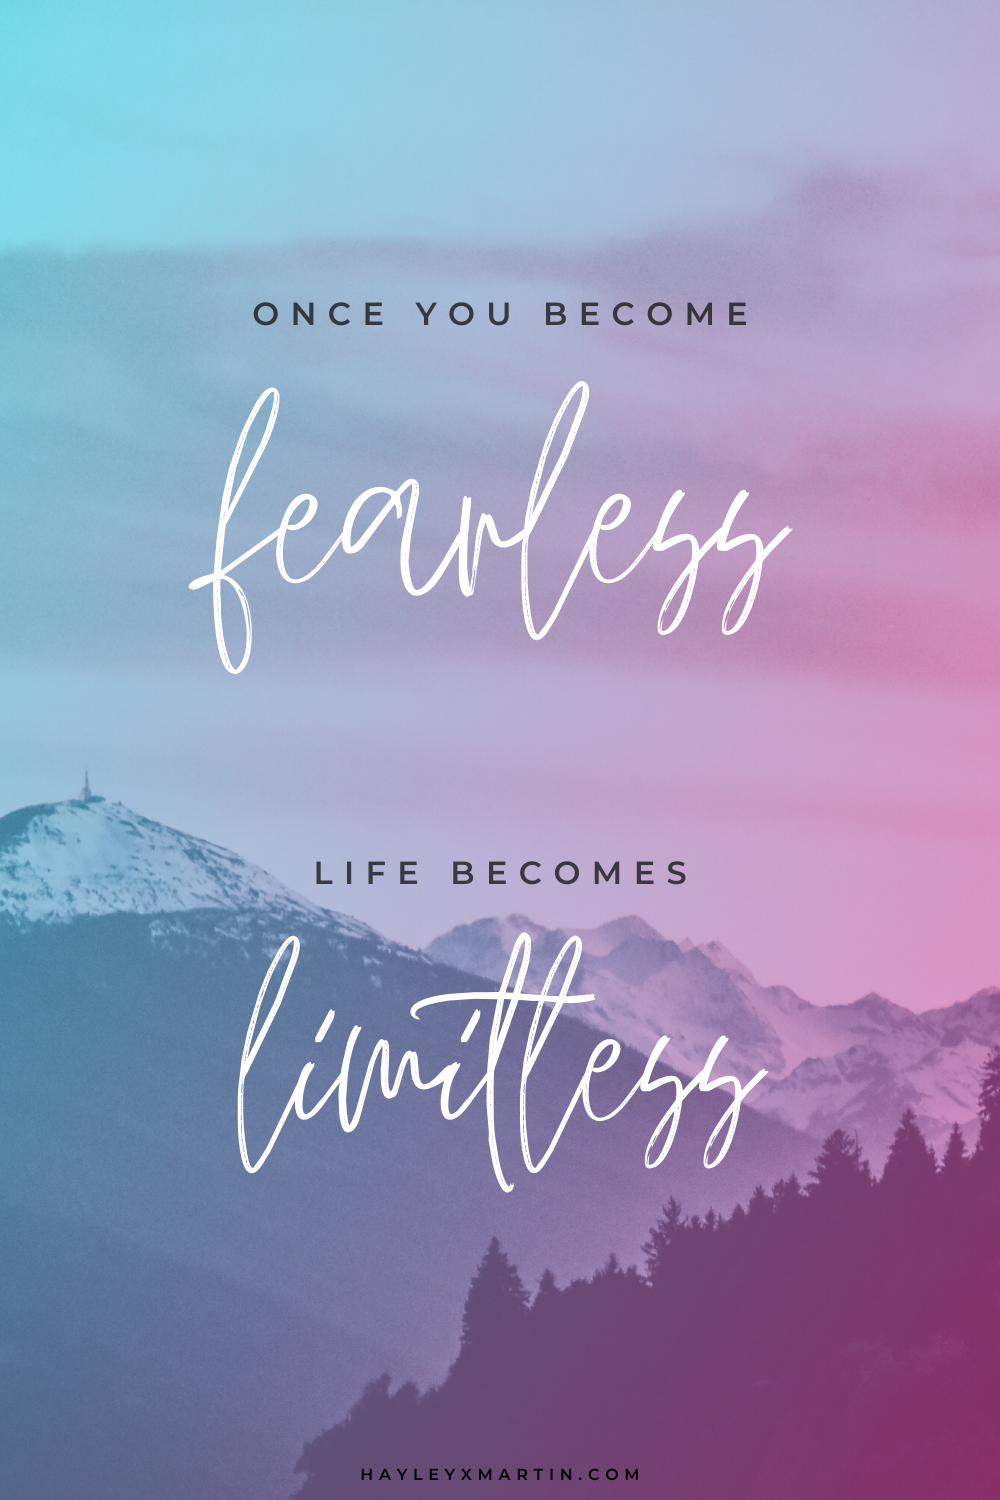 once you become fearless, life becomes limitless | hayleyxmartin.com